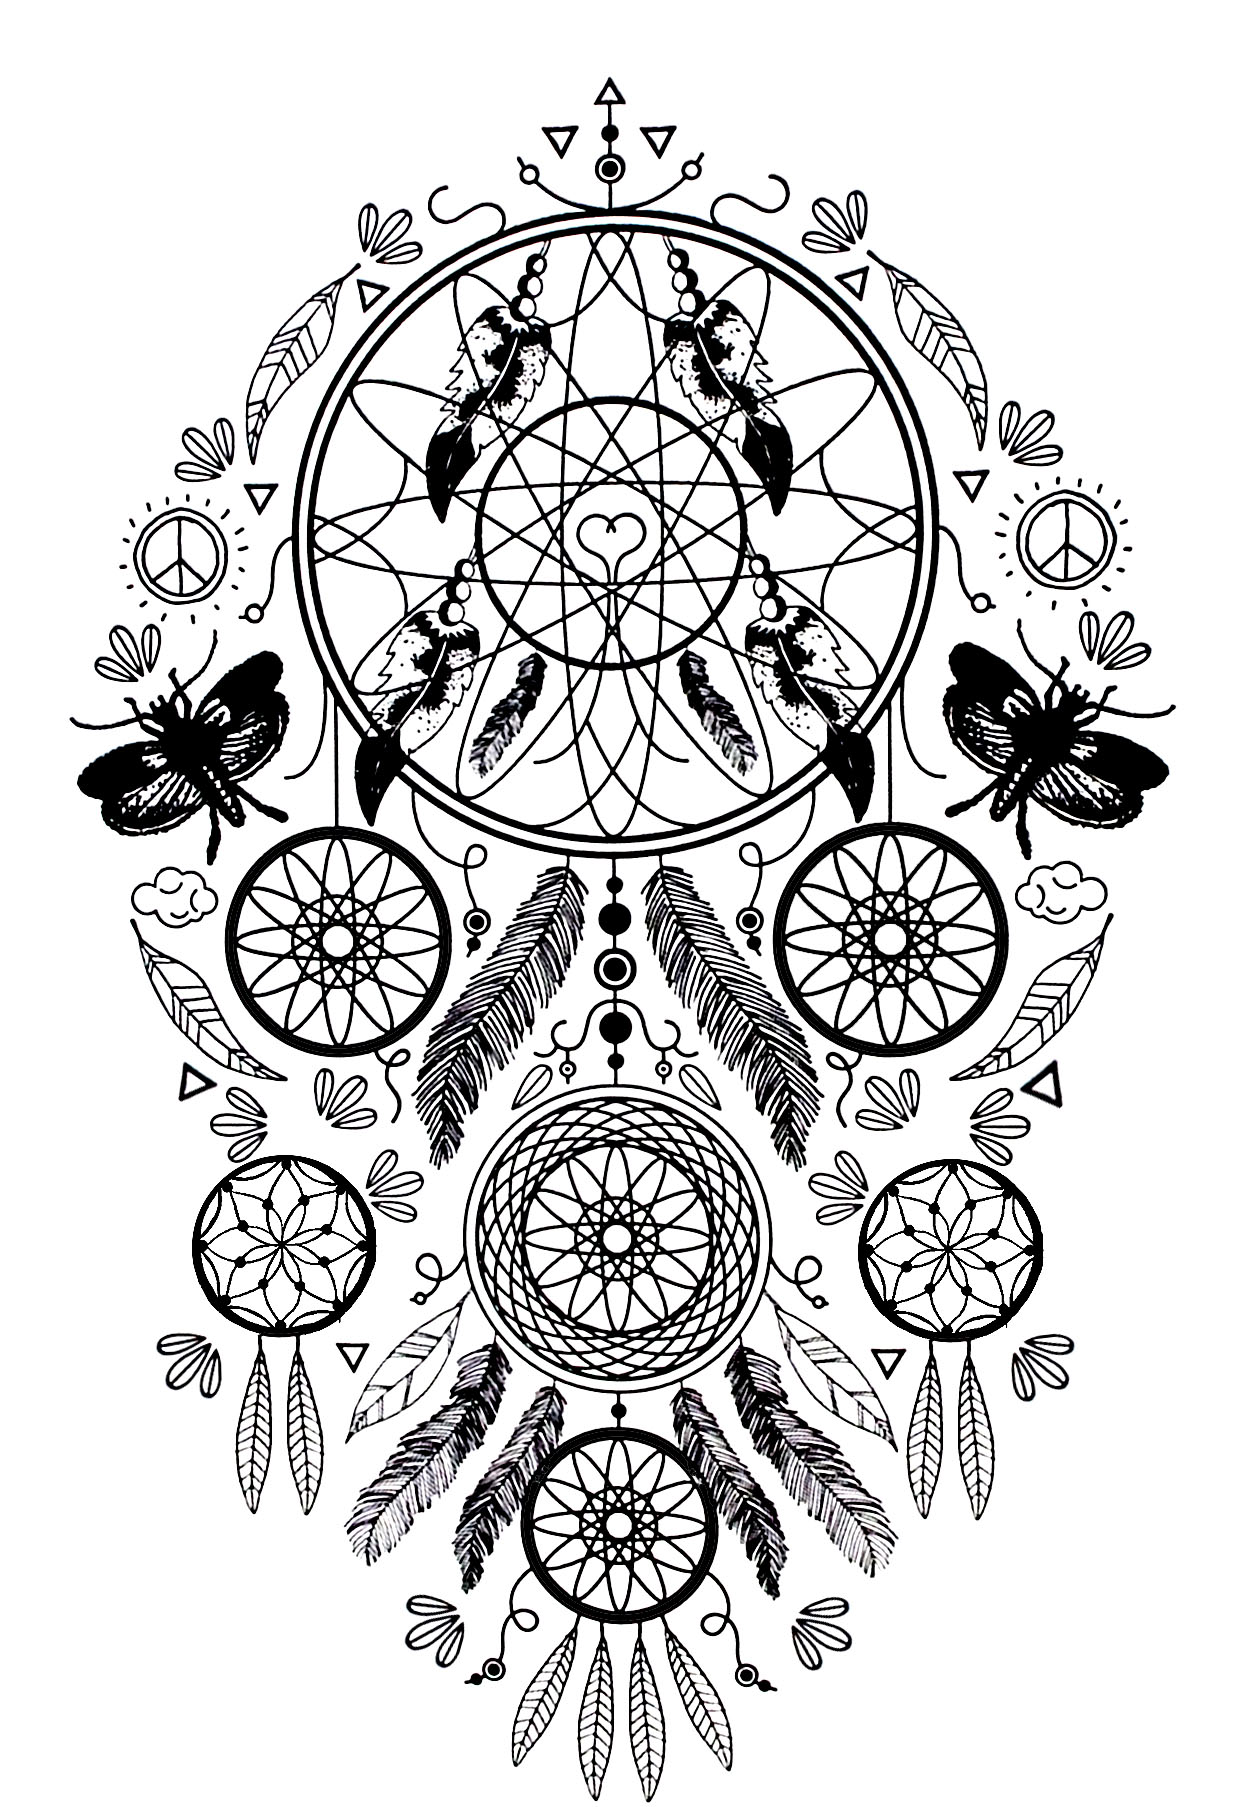 Zen And Anti Stress Coloring Pages For Adults Coloring page